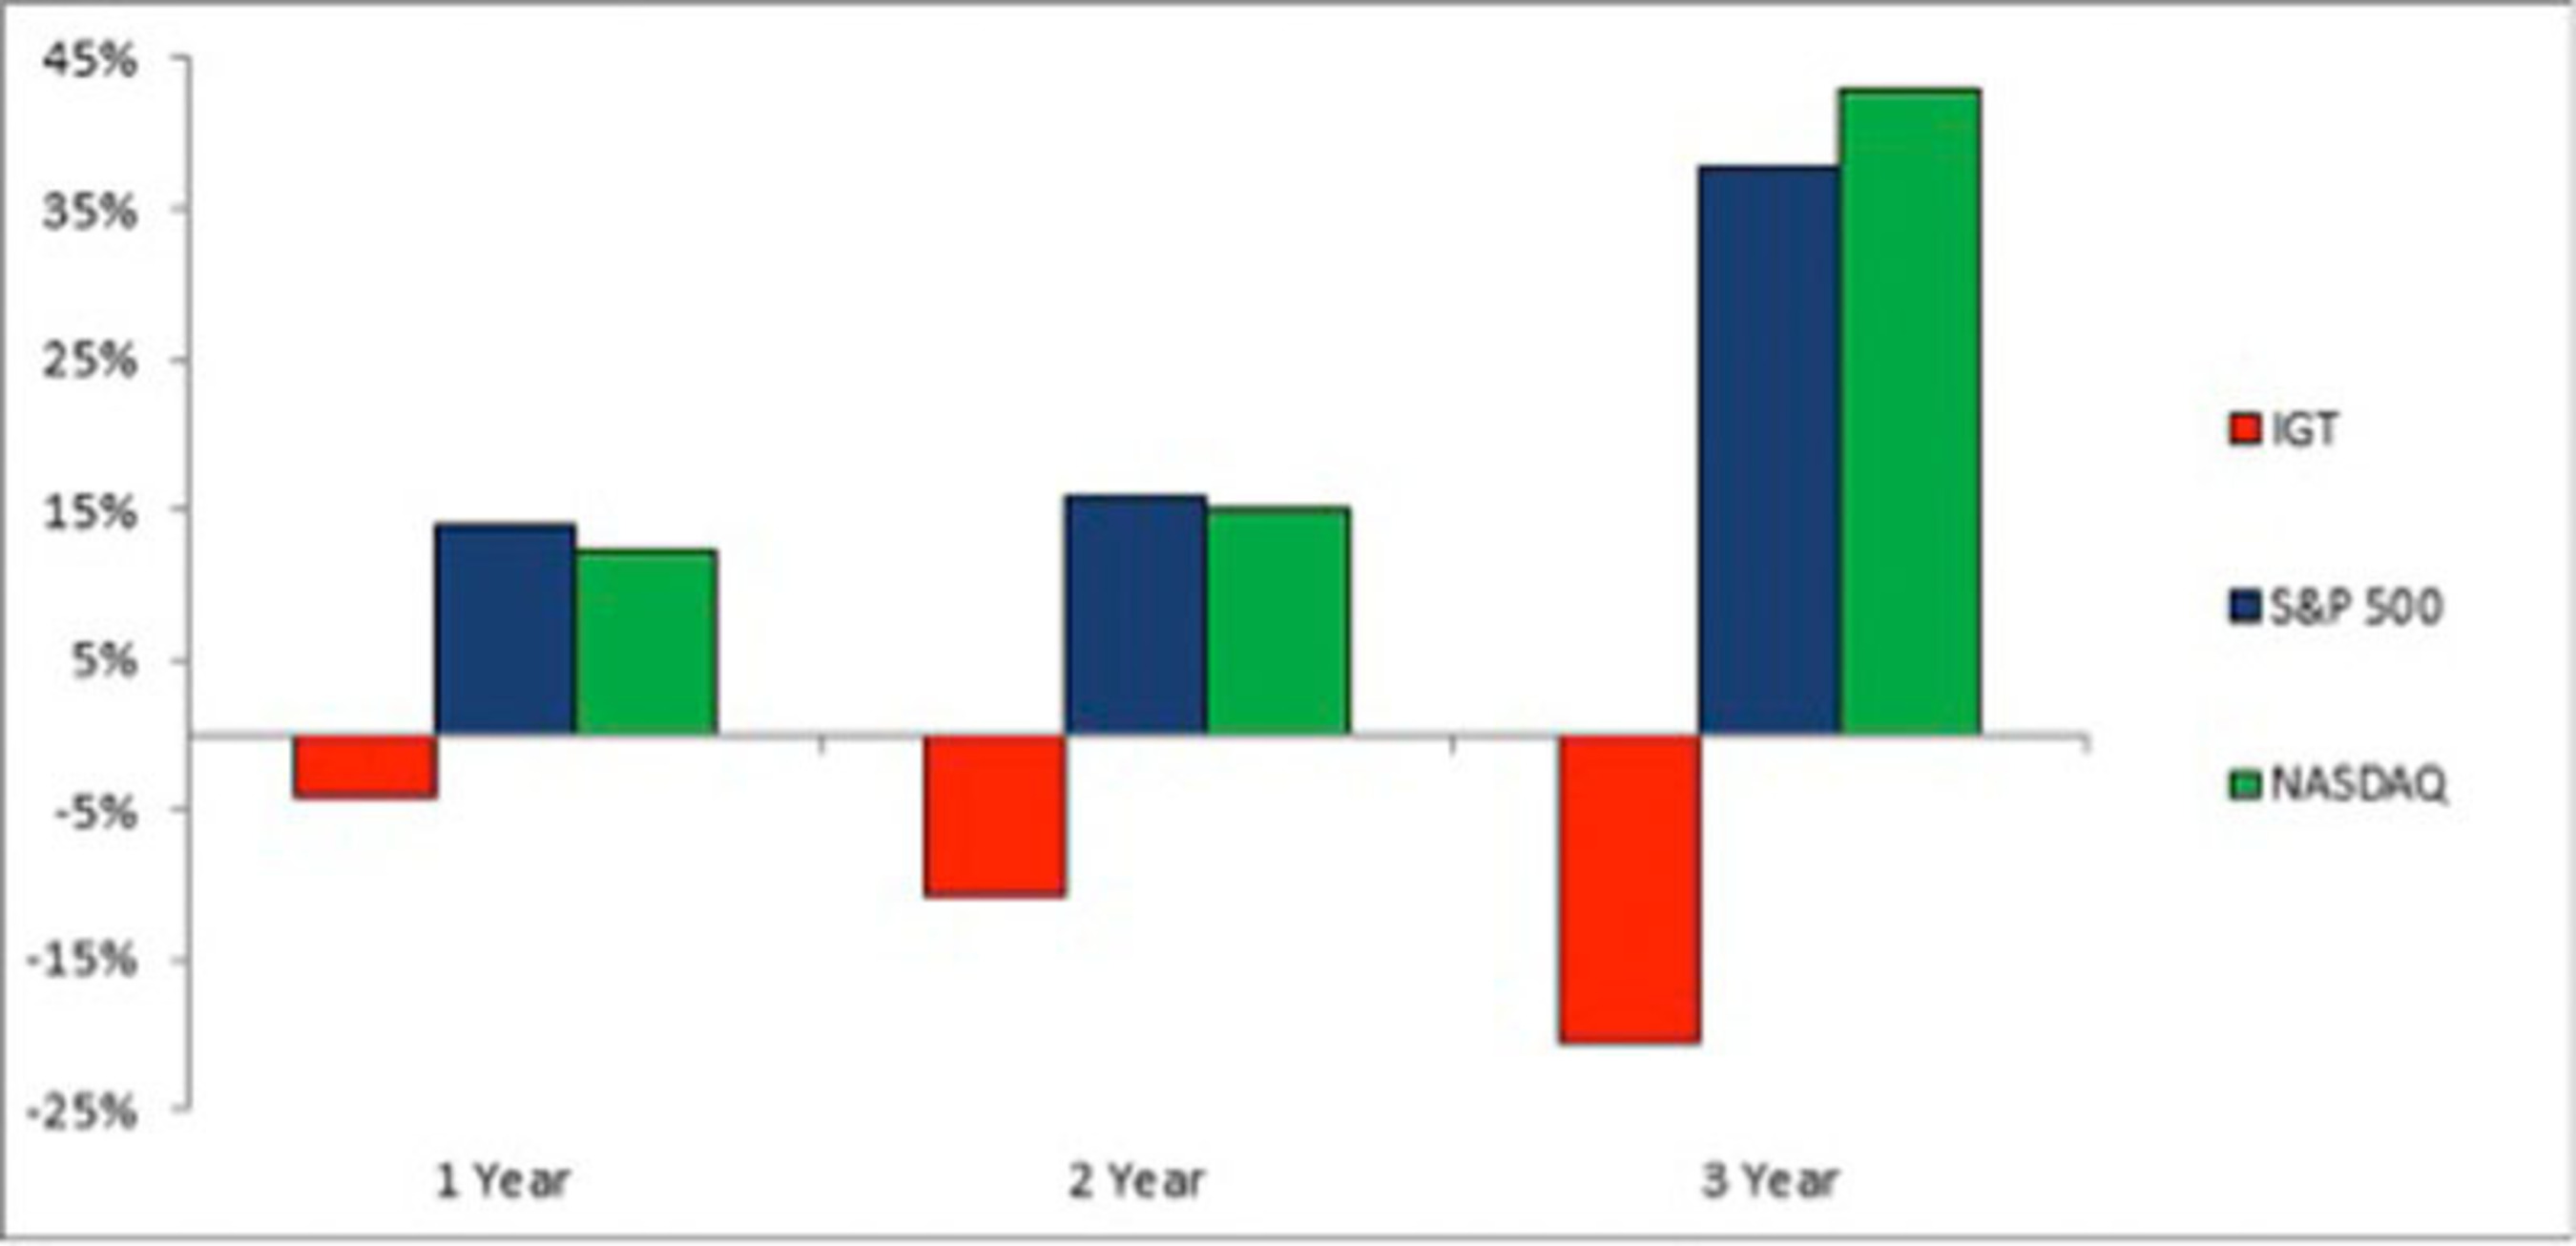 The following chart illustrates the 1-, 2- and 3-year performances of IGT common stock, as compared to the ...